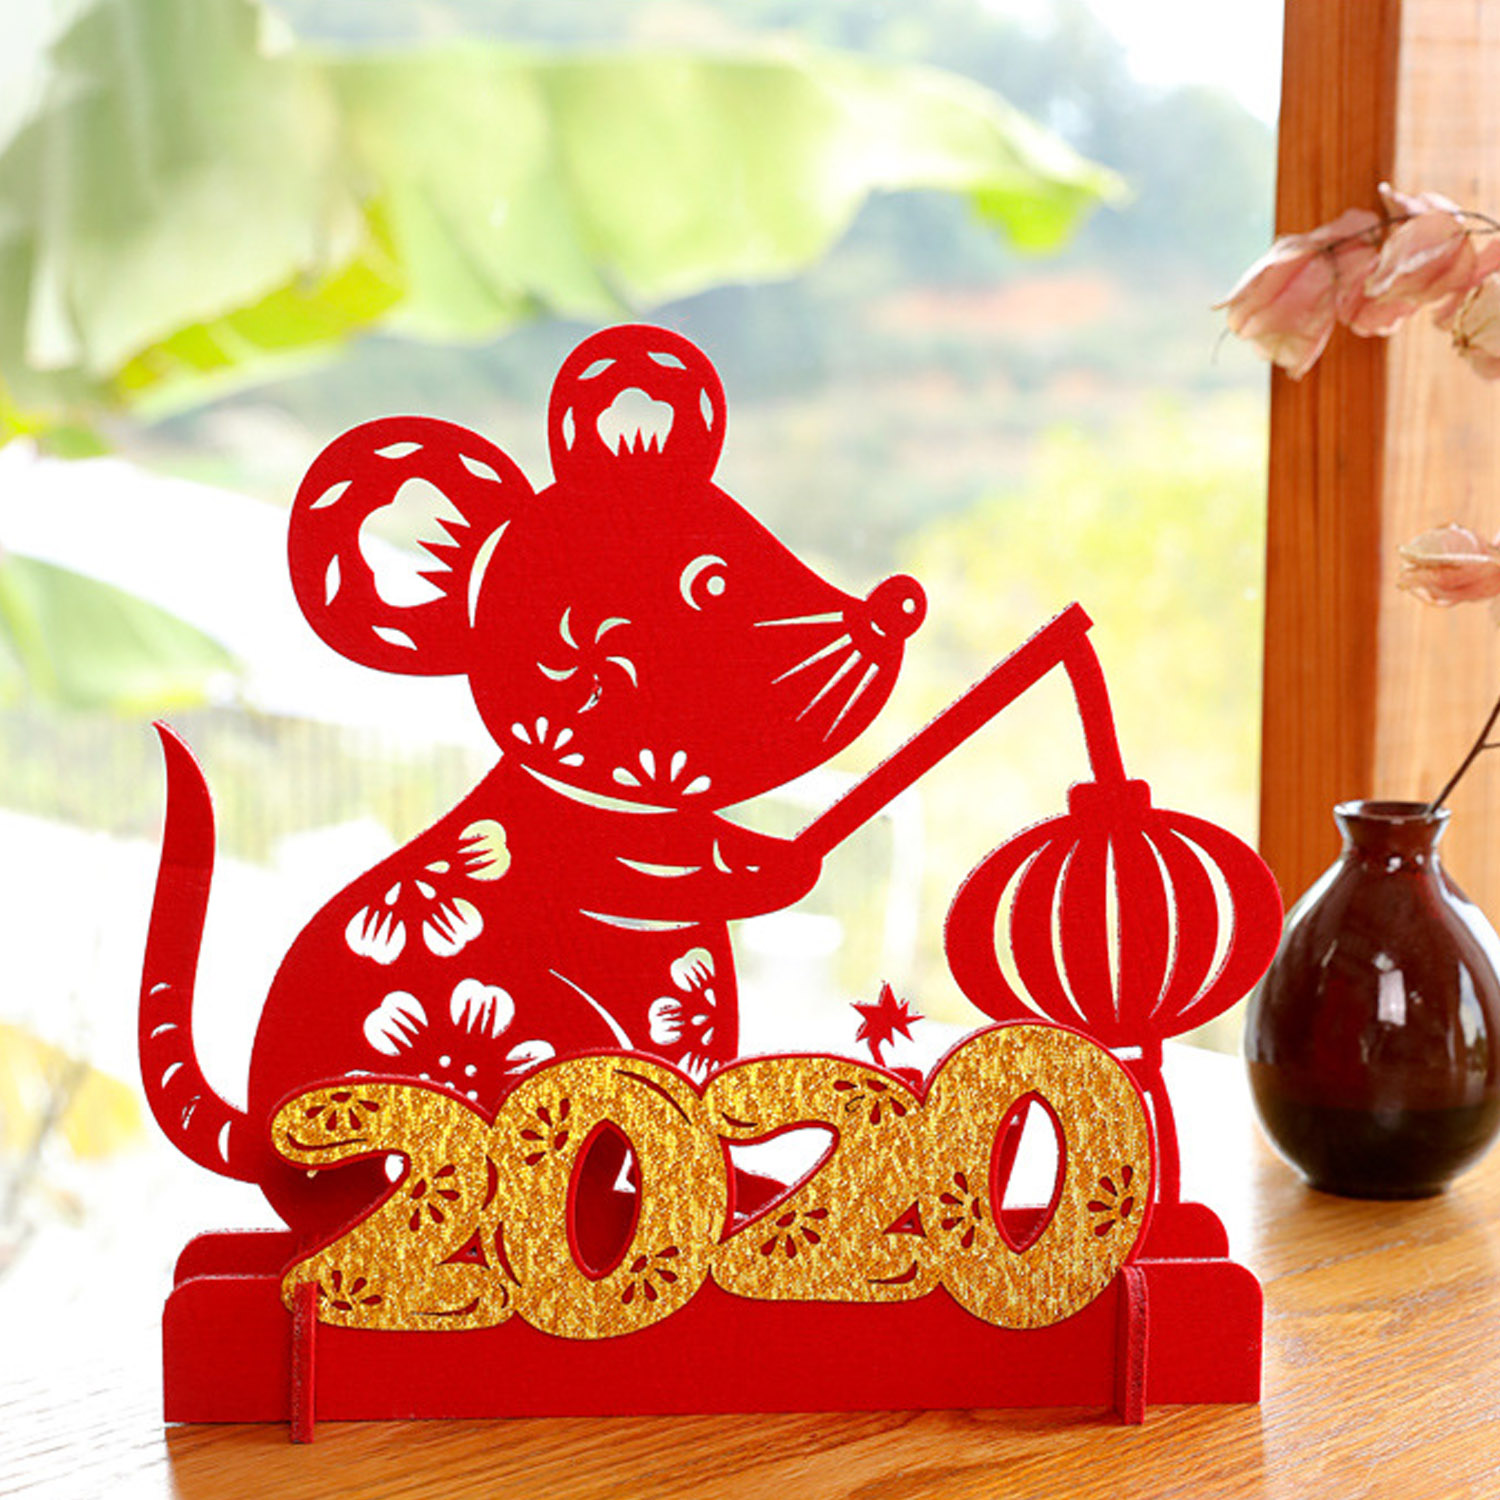 Besegad DIY Chinese New Year Red Rat Desk Table Ornaments Year Of The Mouse Spring Festival Decorations For Home Office Supplies